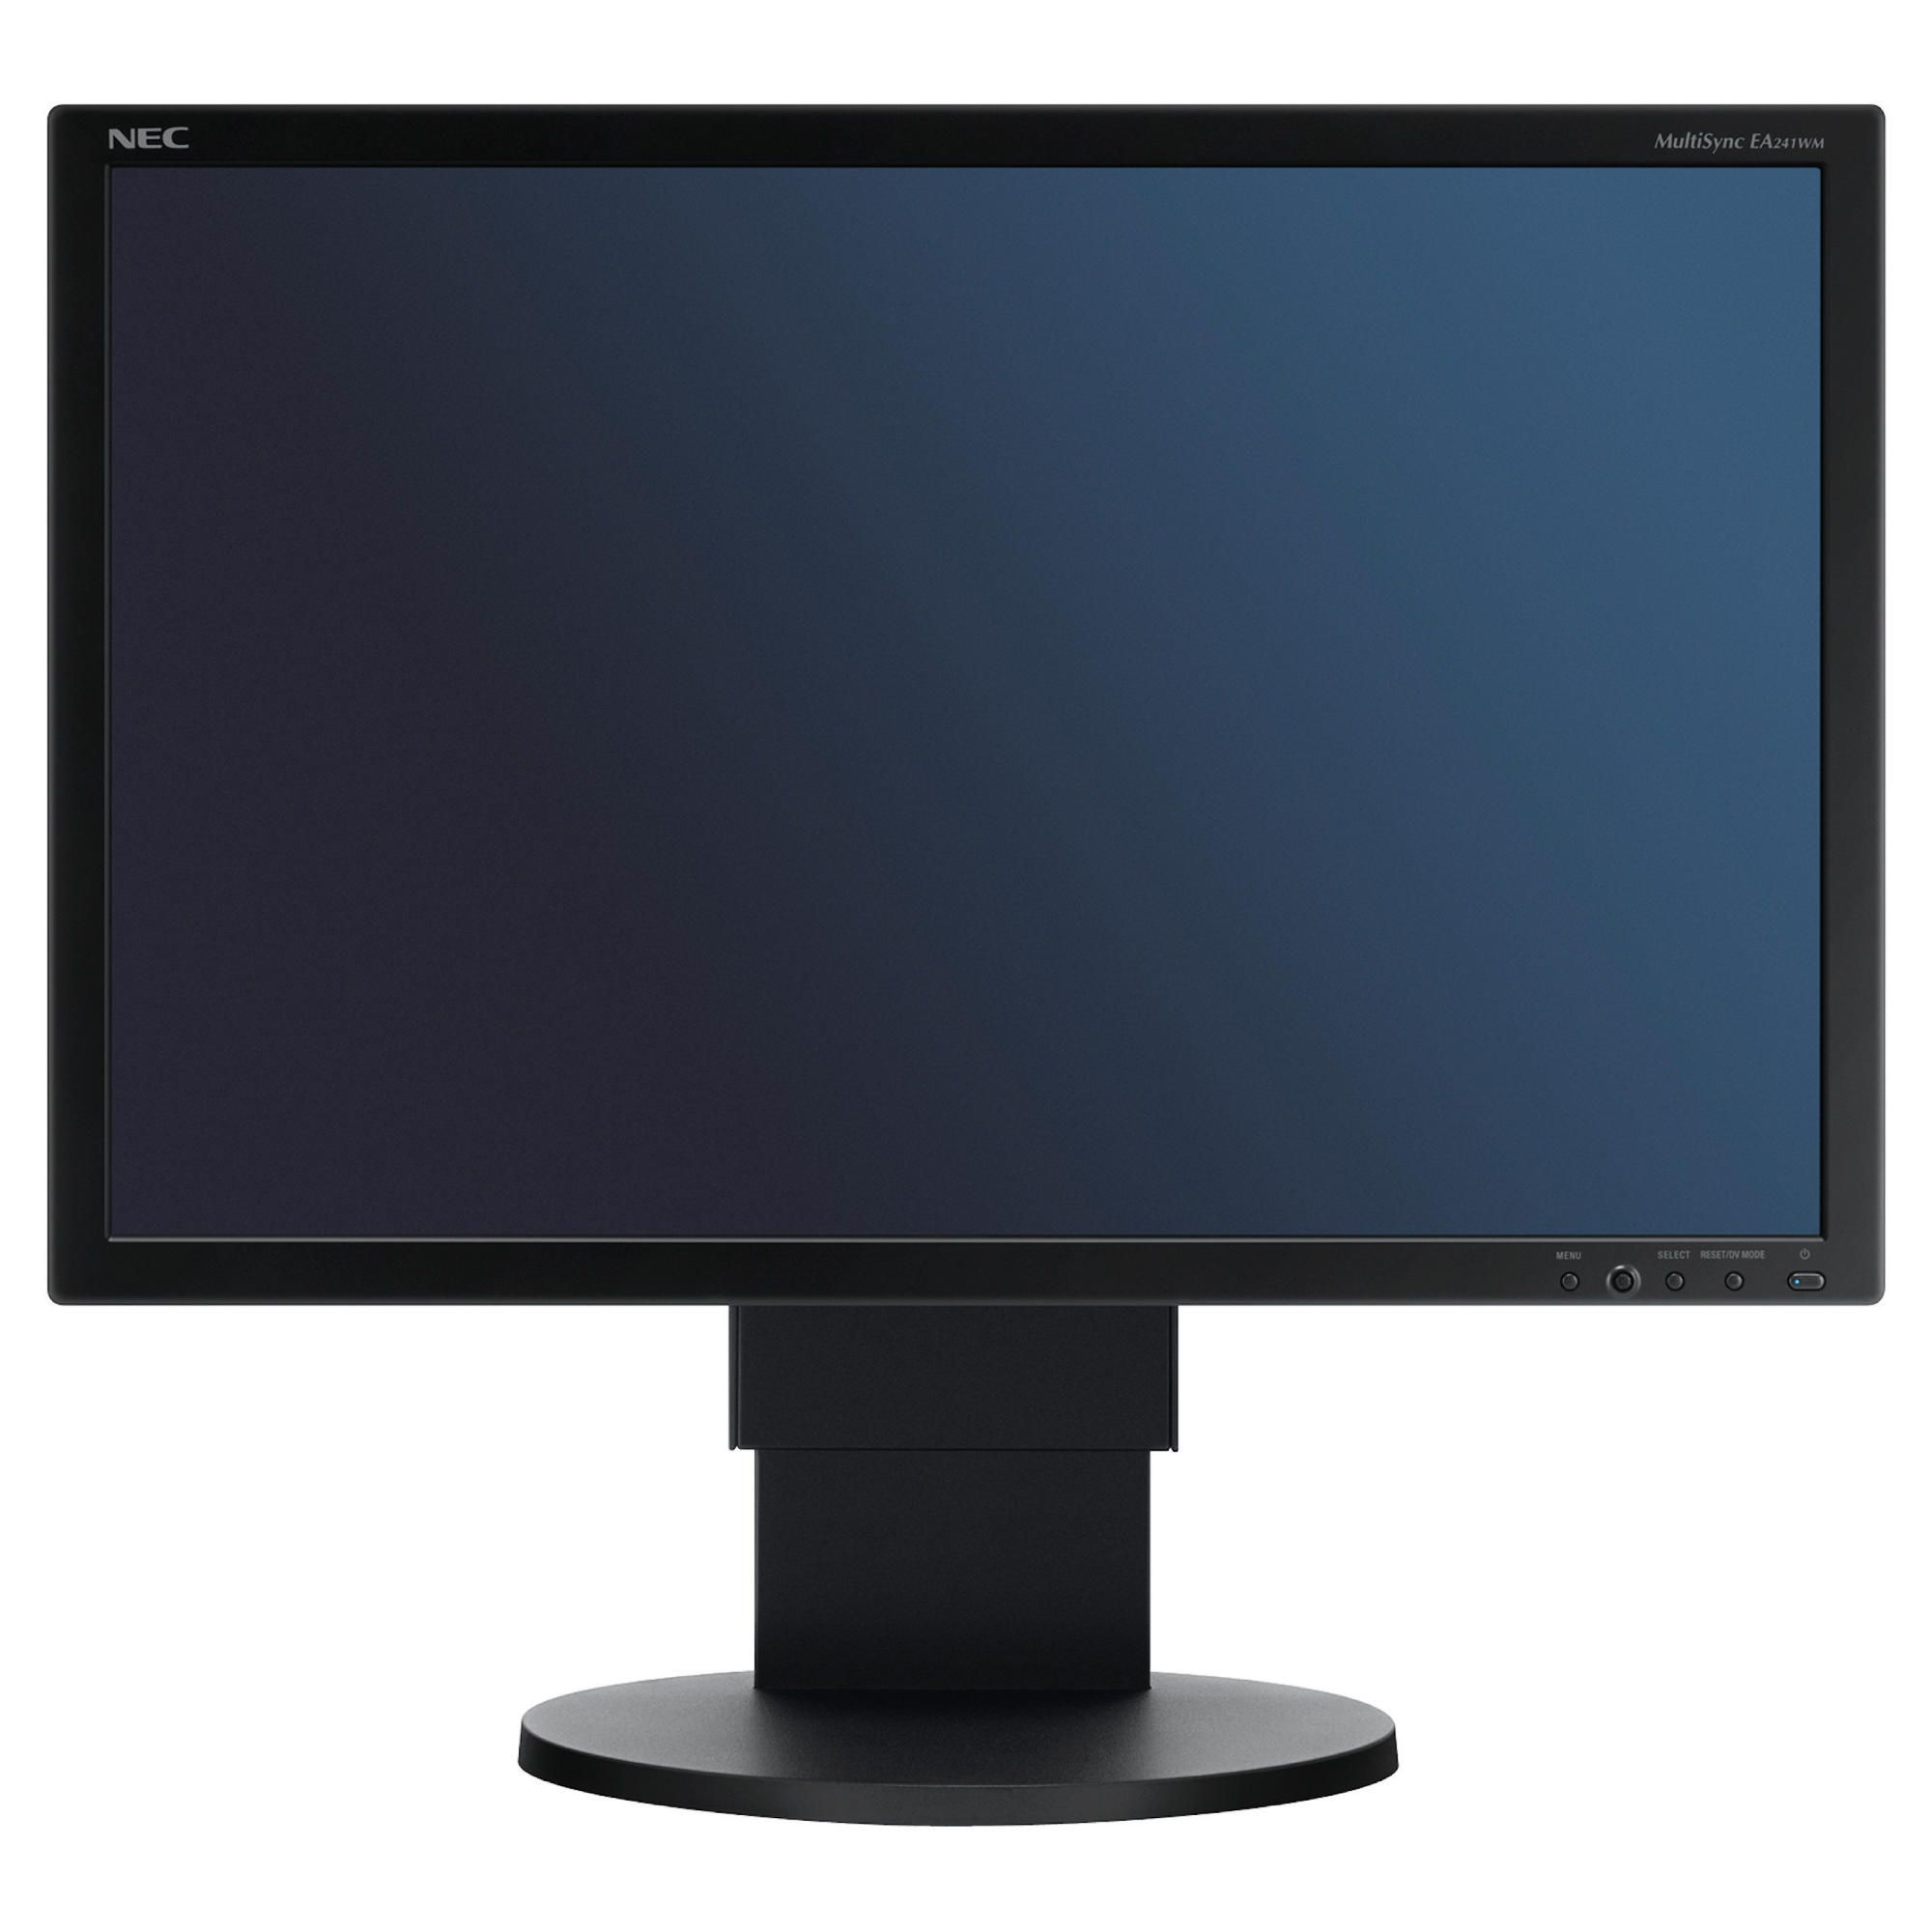 NEC EA241WMB 24'' LCD Monitor Black at Tesco Direct